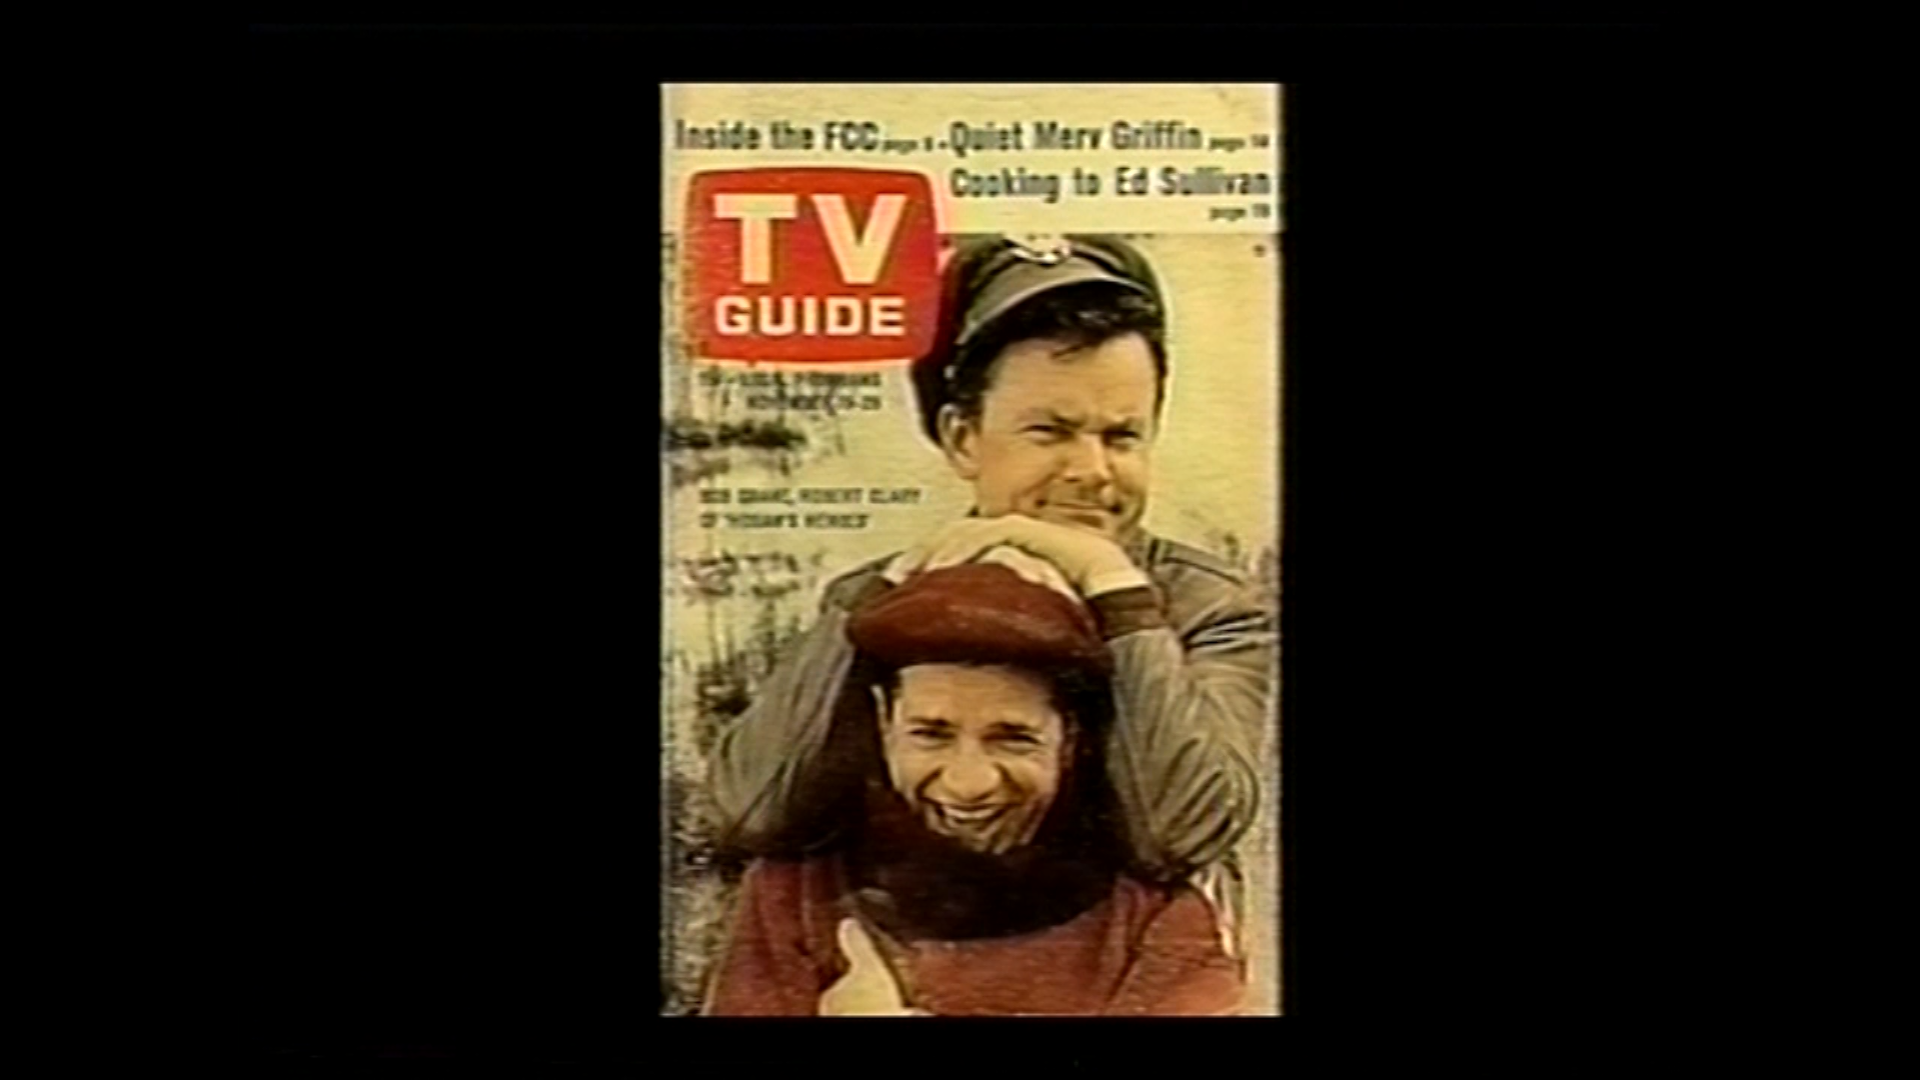 Bob Crane on the cover of TV Guide